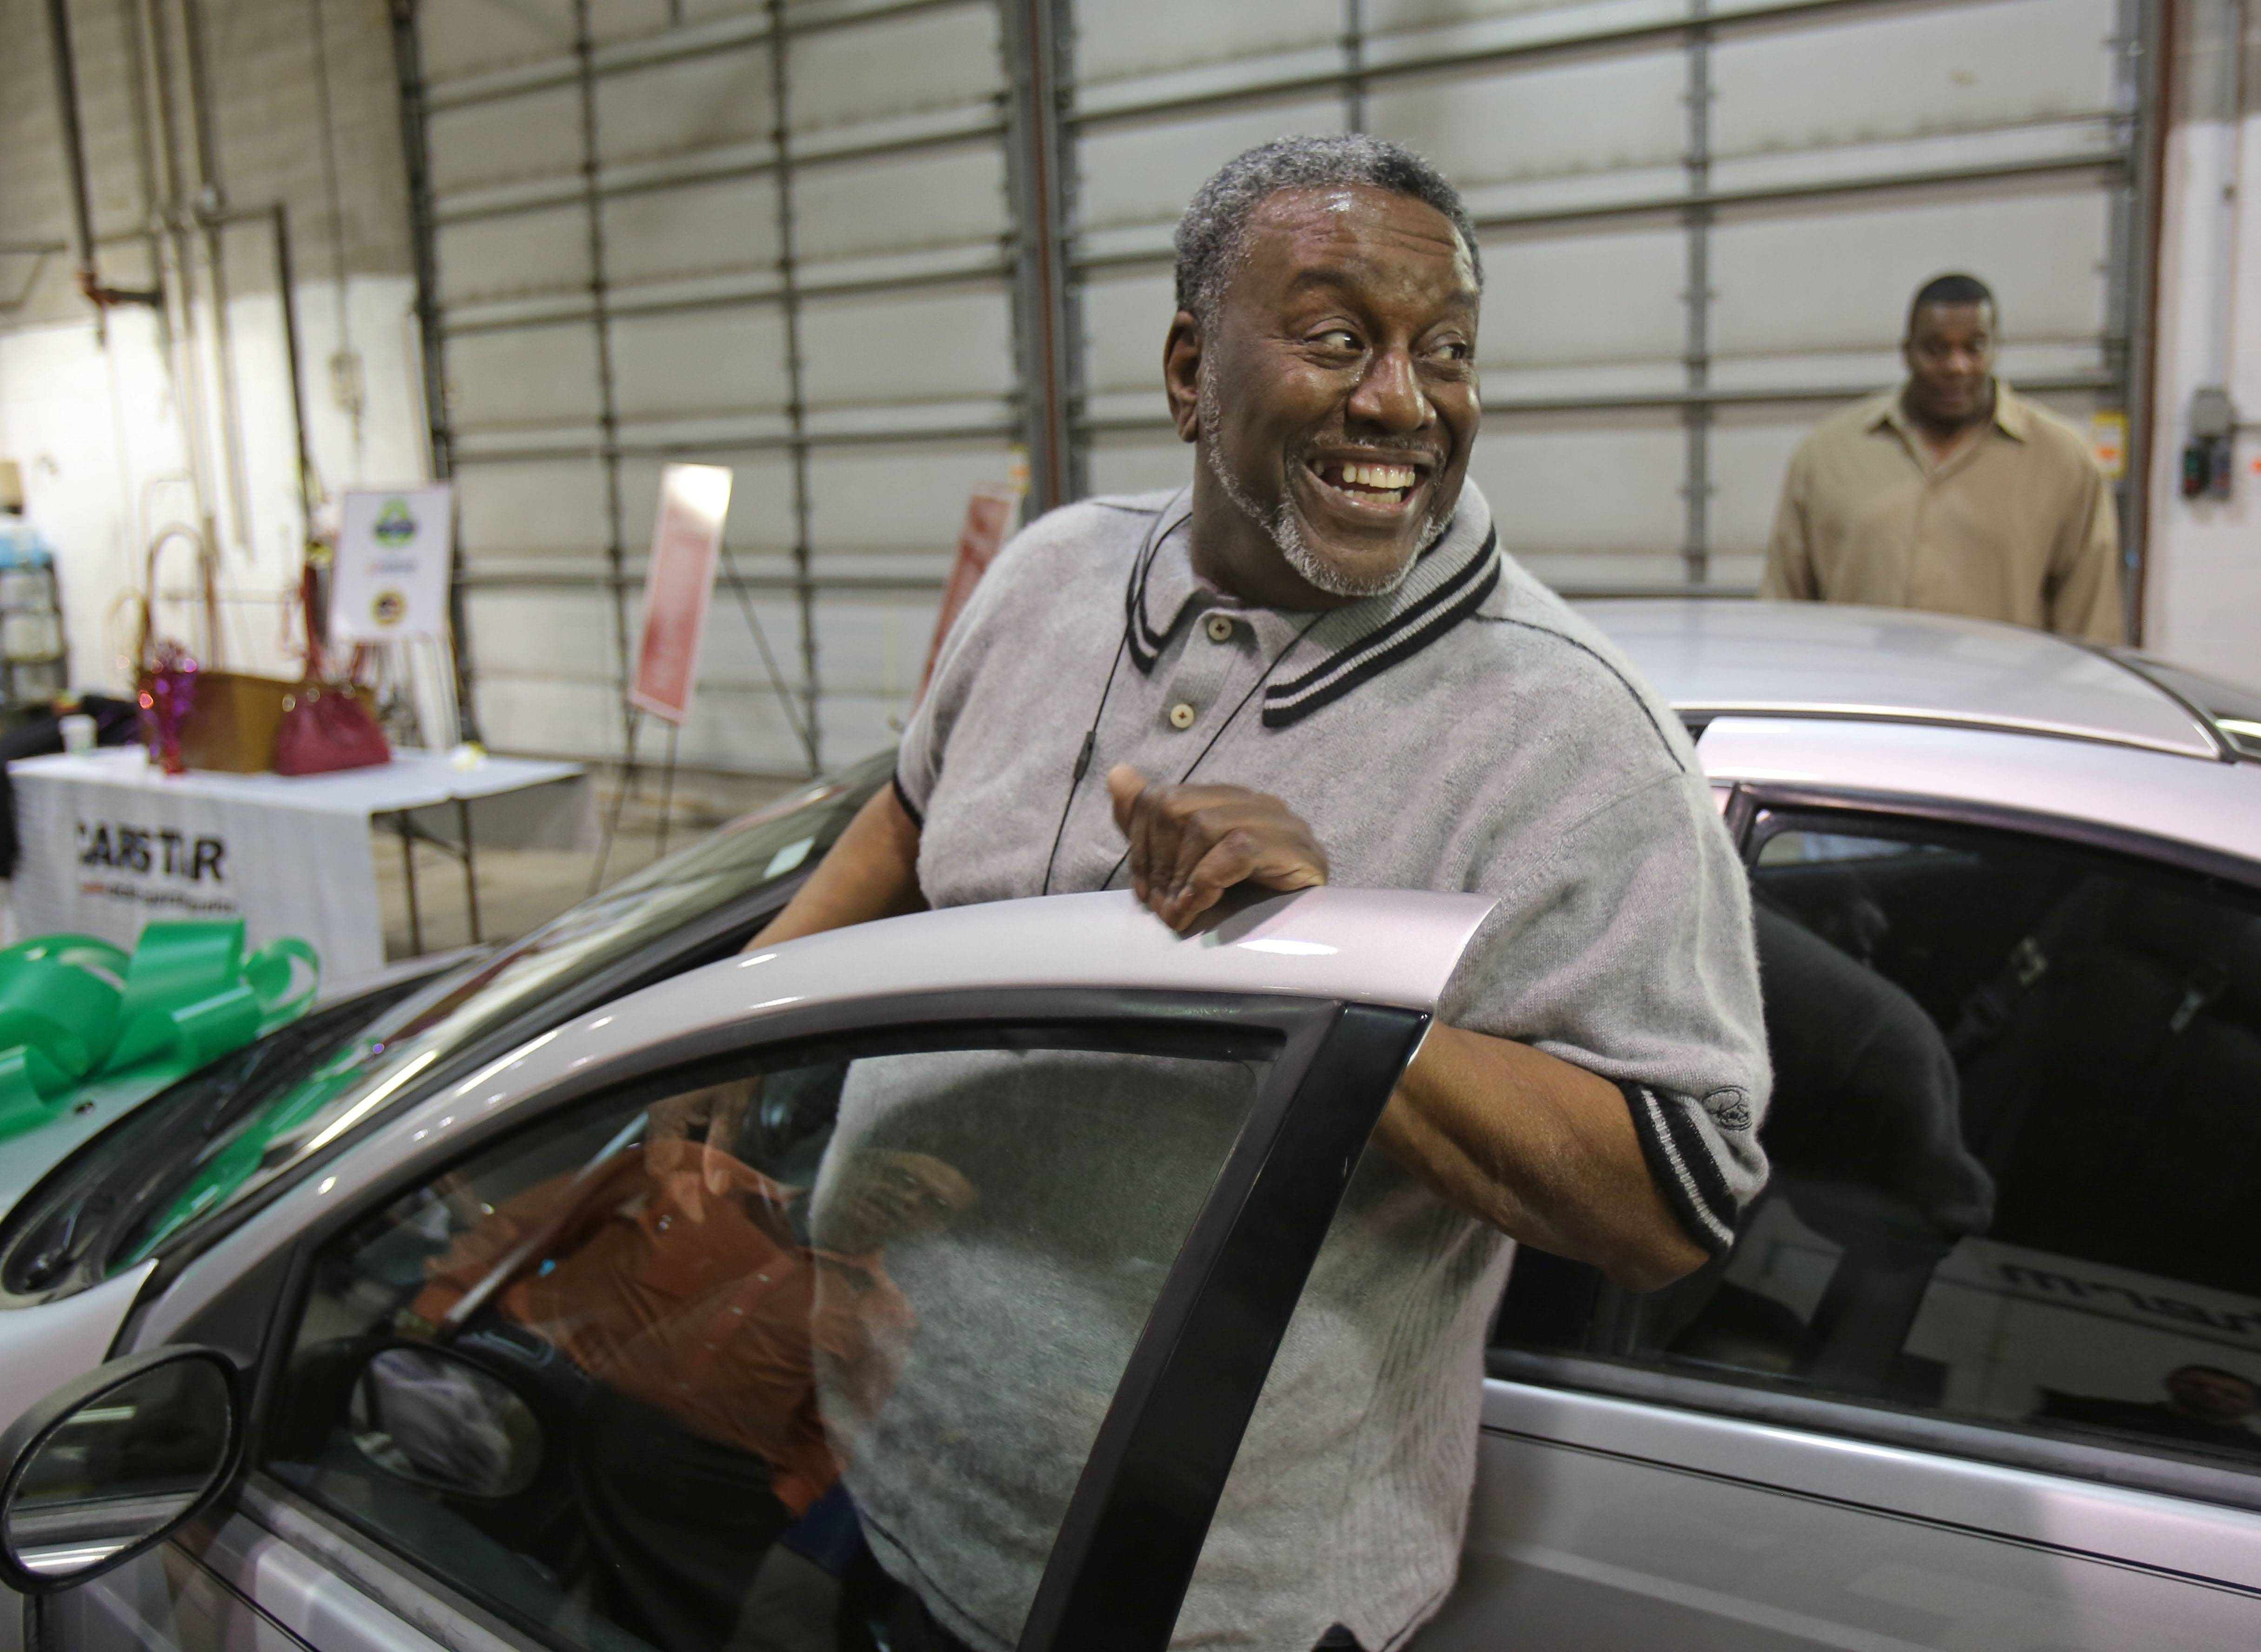 Milton Whitington, 63, of Waukegan is all smiles Wednesday as he gets into his car. The refurbished Dodge Neon was presented to Whittington through a program called Recycled Ride sponsored by Carstar in Mundelein and Esurance.